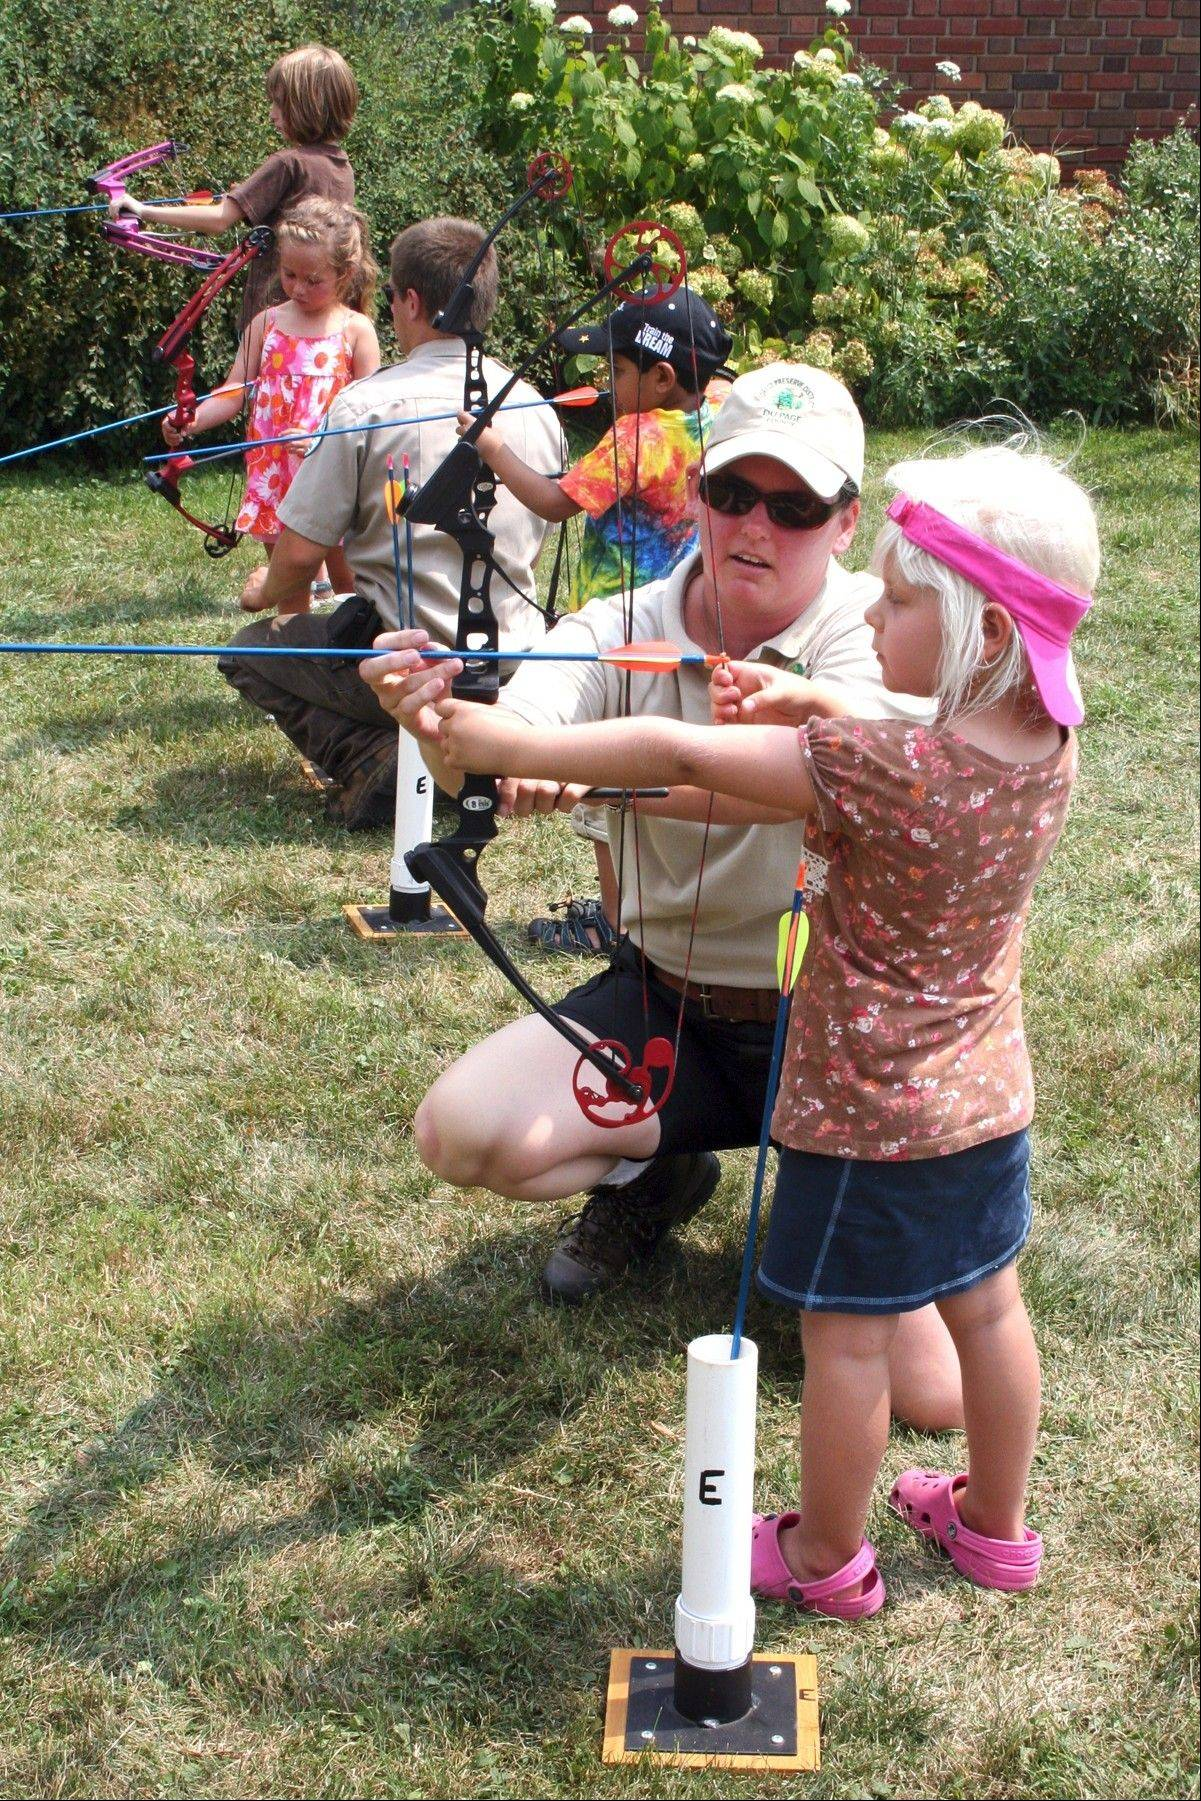 Kids can get lessons in archery as part of Family Day at the Mayslake Peabody Estate in Oak Brook.